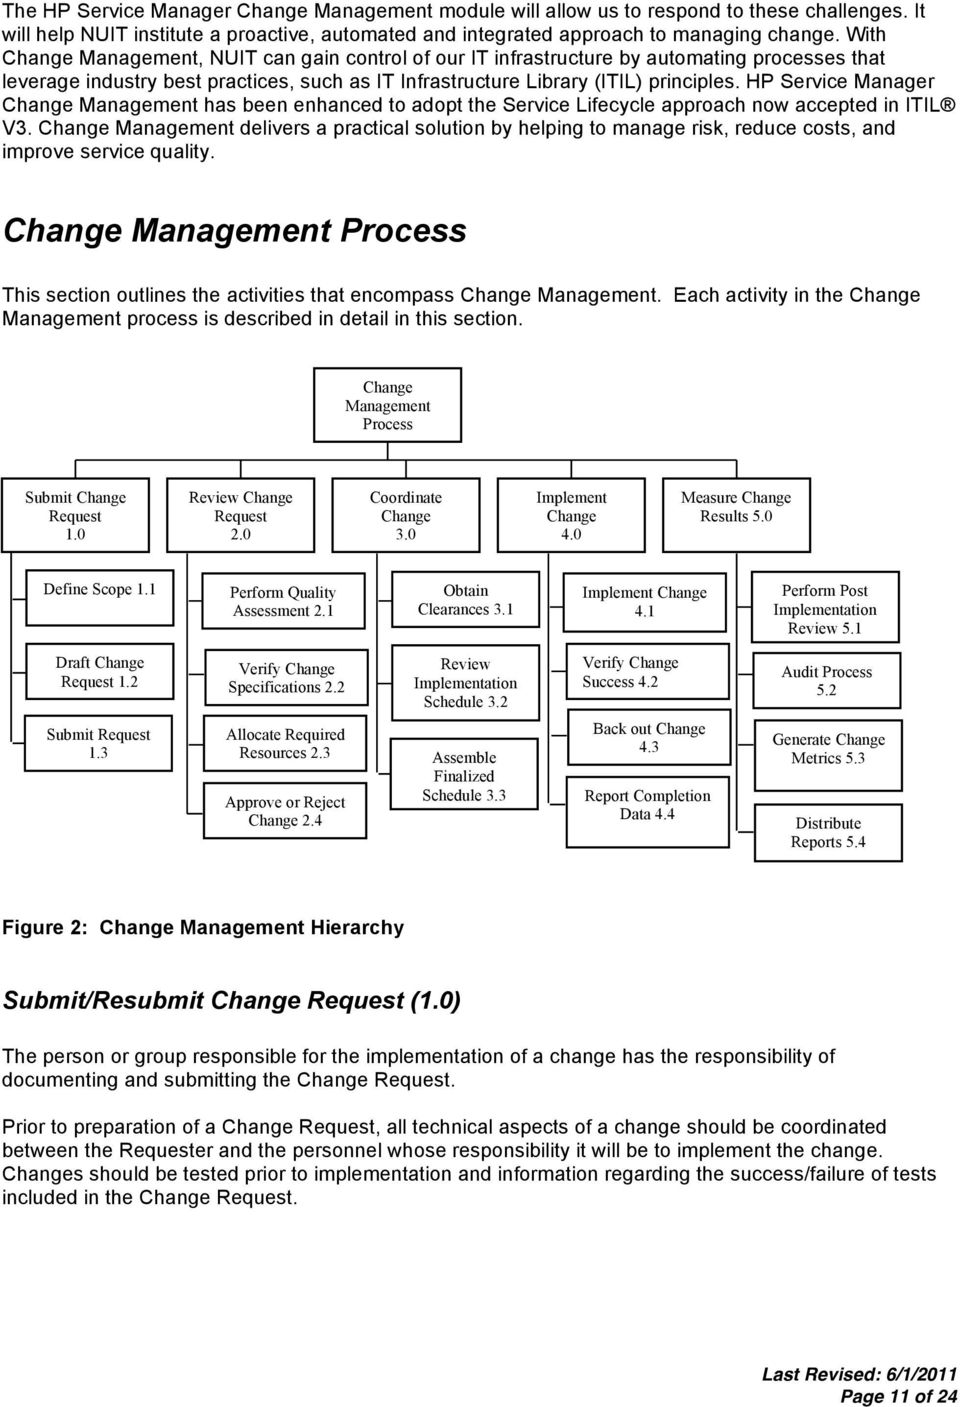 HP Service Manager Change Management has been enhanced to adopt the Service Lifecycle approach now accepted in ITIL V3.